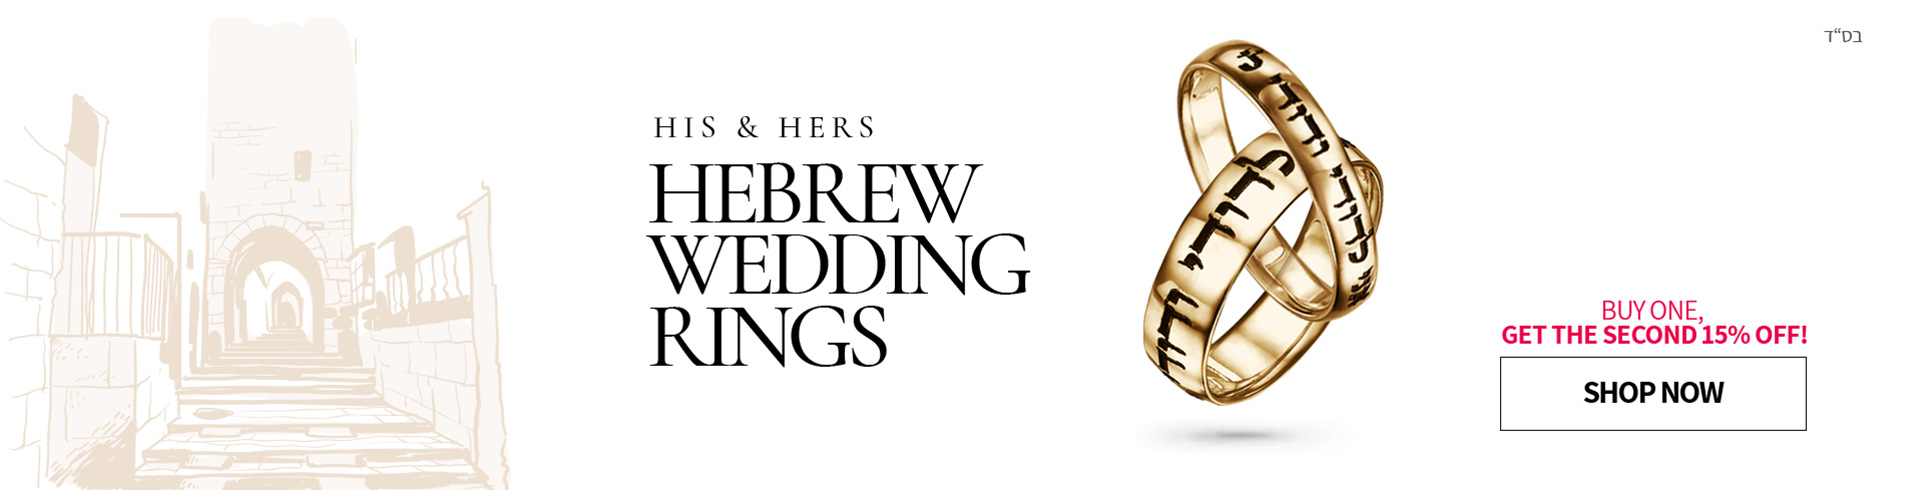 His&Hers – Hebrew Wedding Rings – Desktop Banner